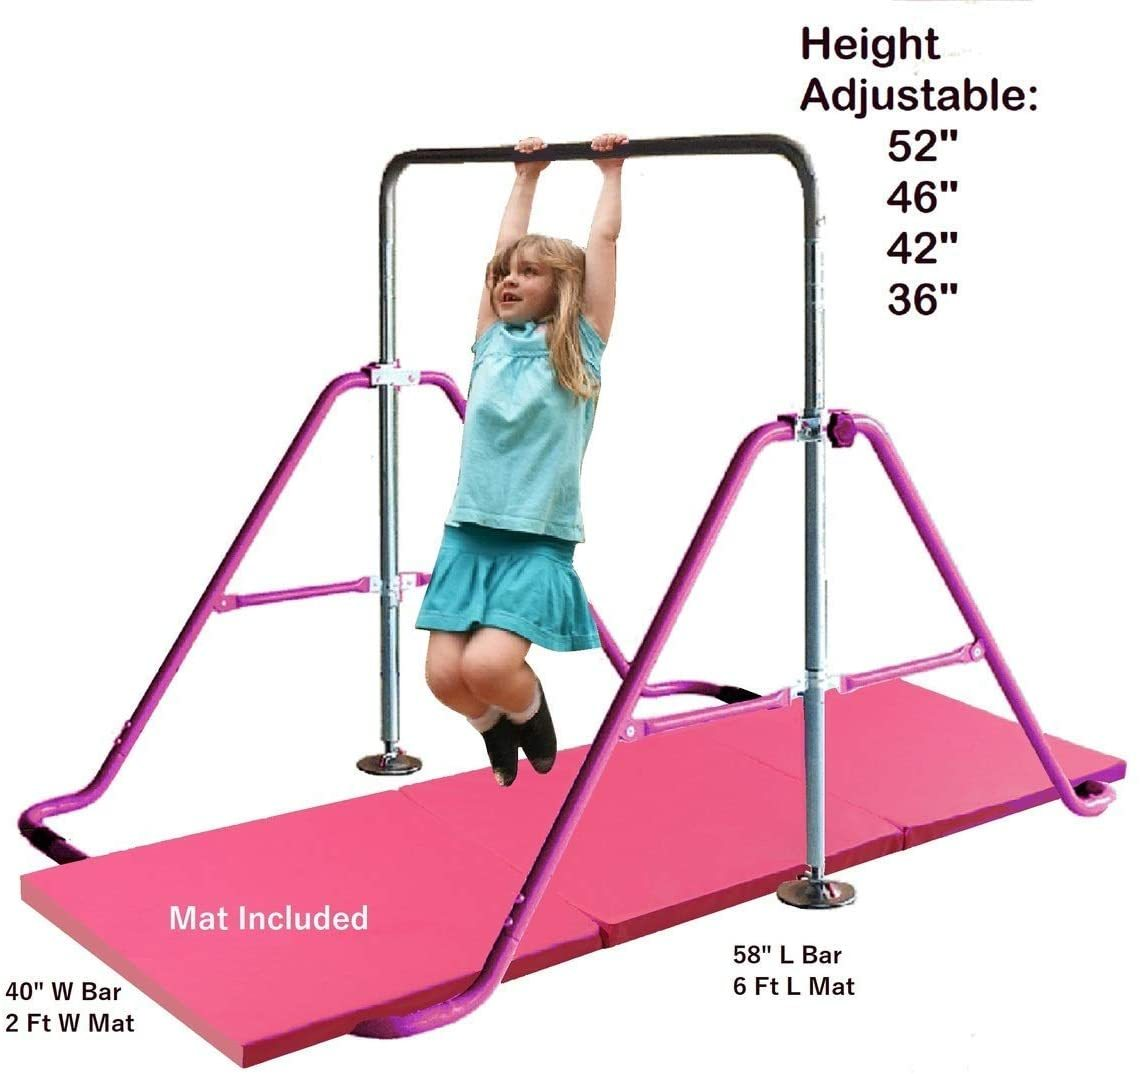 Monkey Bar Horizontal Bars Children Junior Training Play Height Adjustable Folding Balance Bar Pink with 6' x 2' Gymnastic Mat